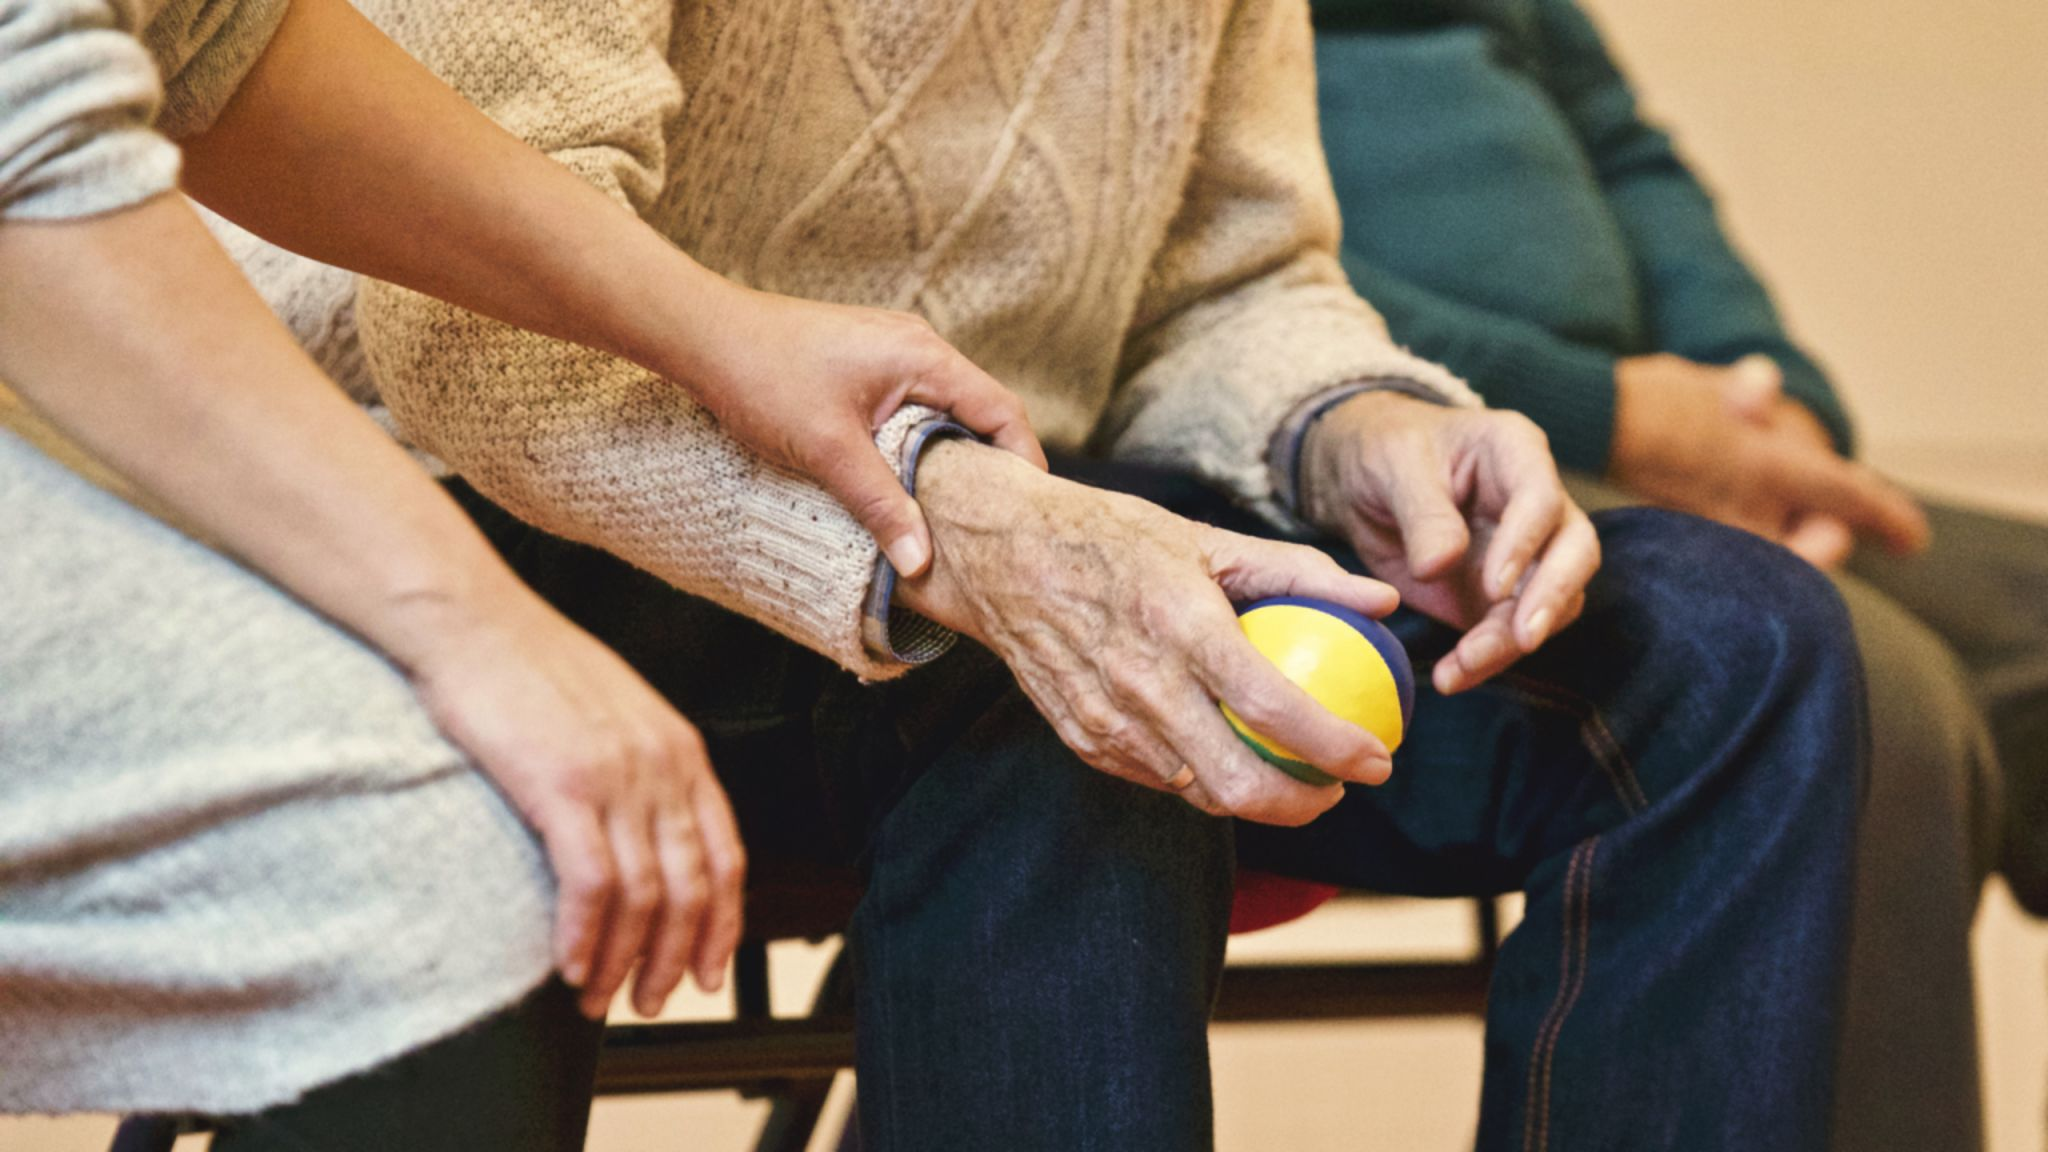 Early signs of dementia - old man holding a ball. Lady next to him comforting him.